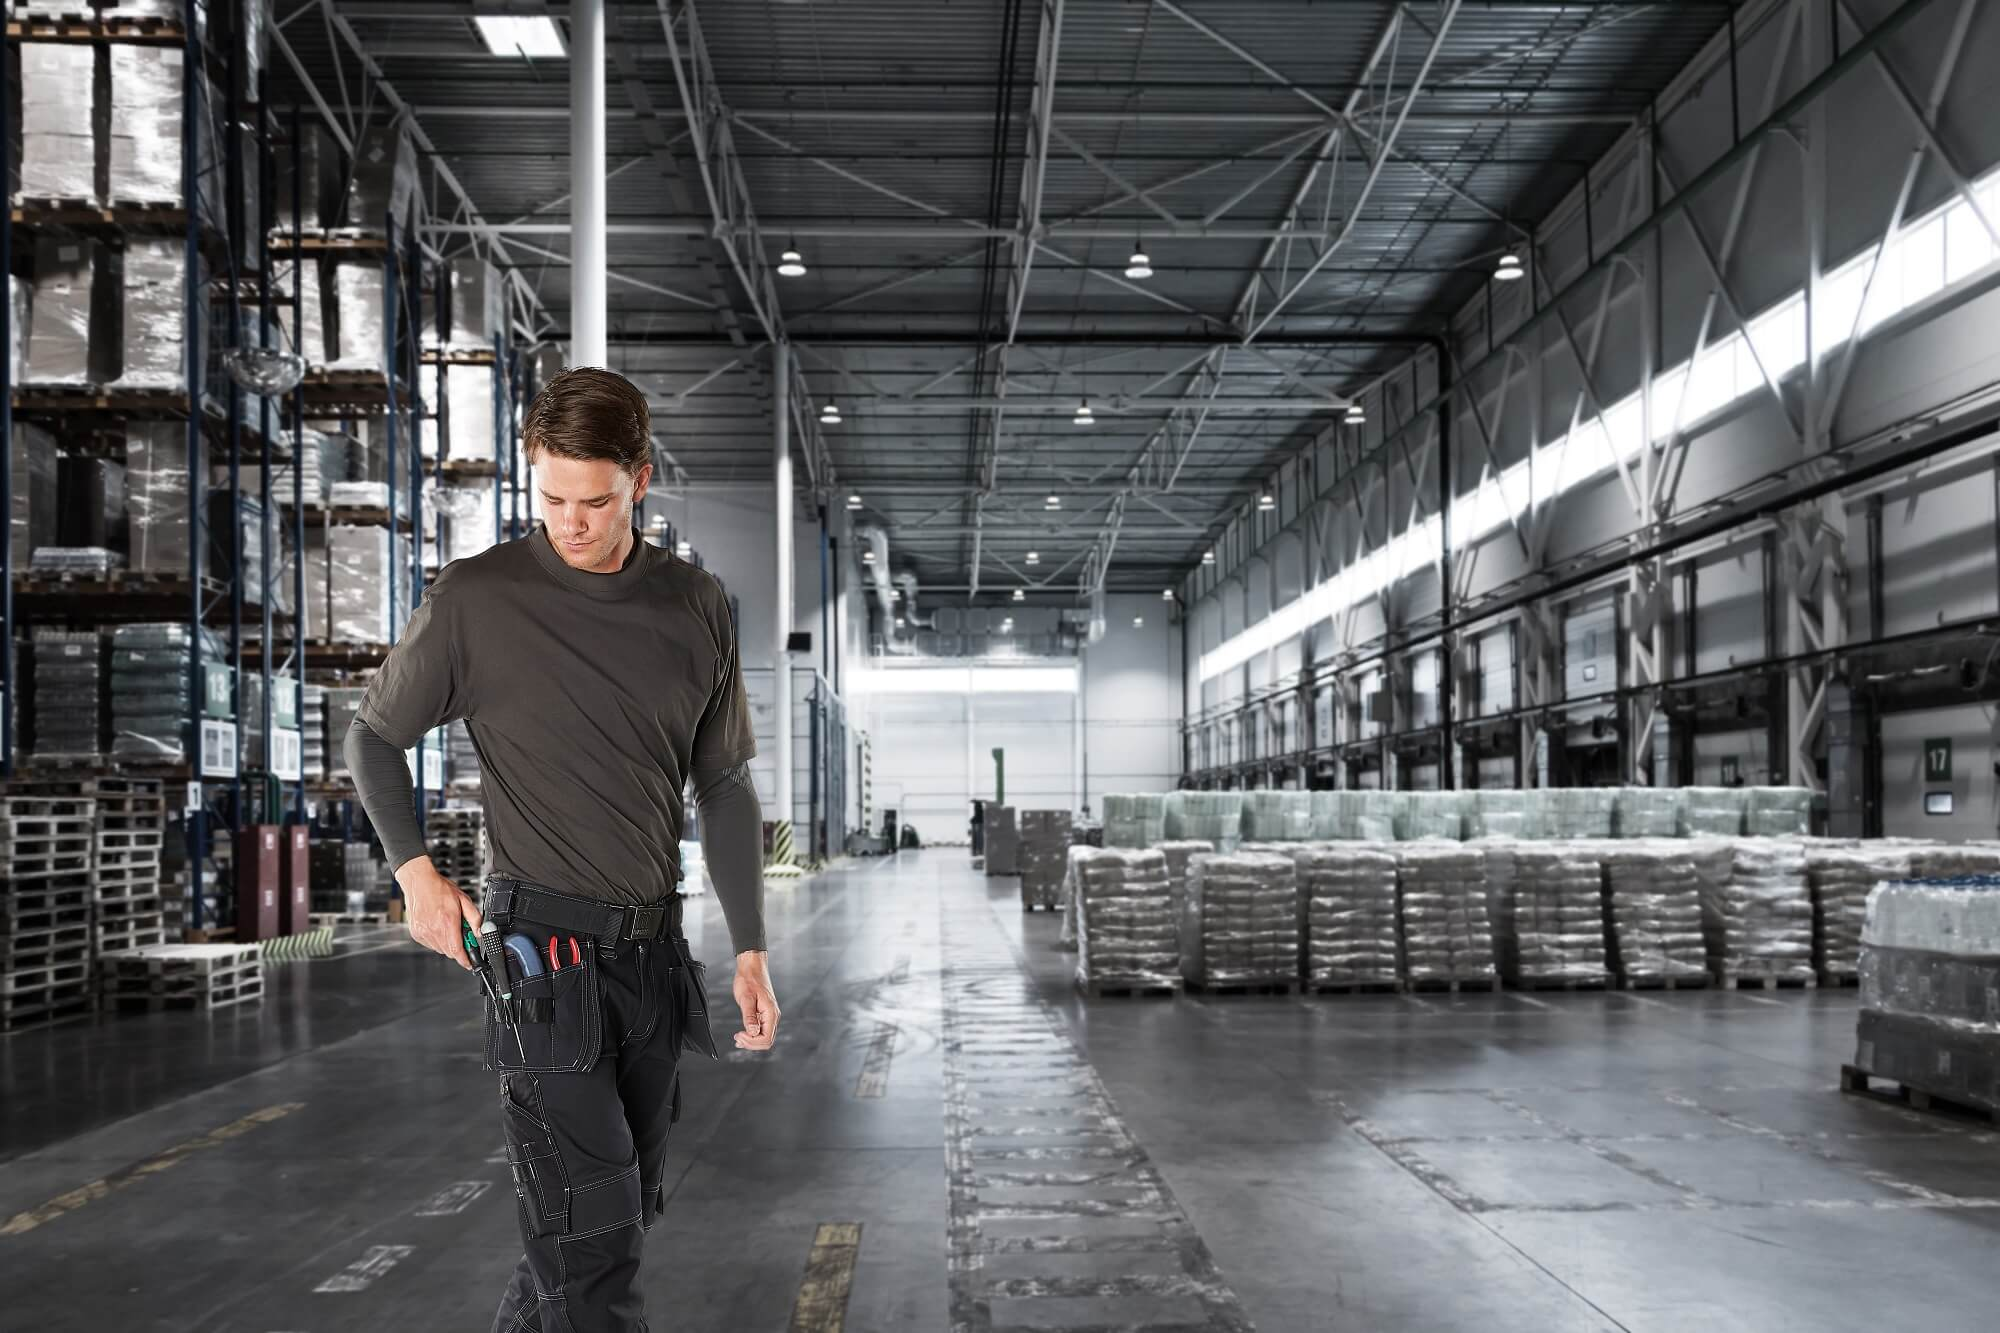 Warehouse - Man - Workwear